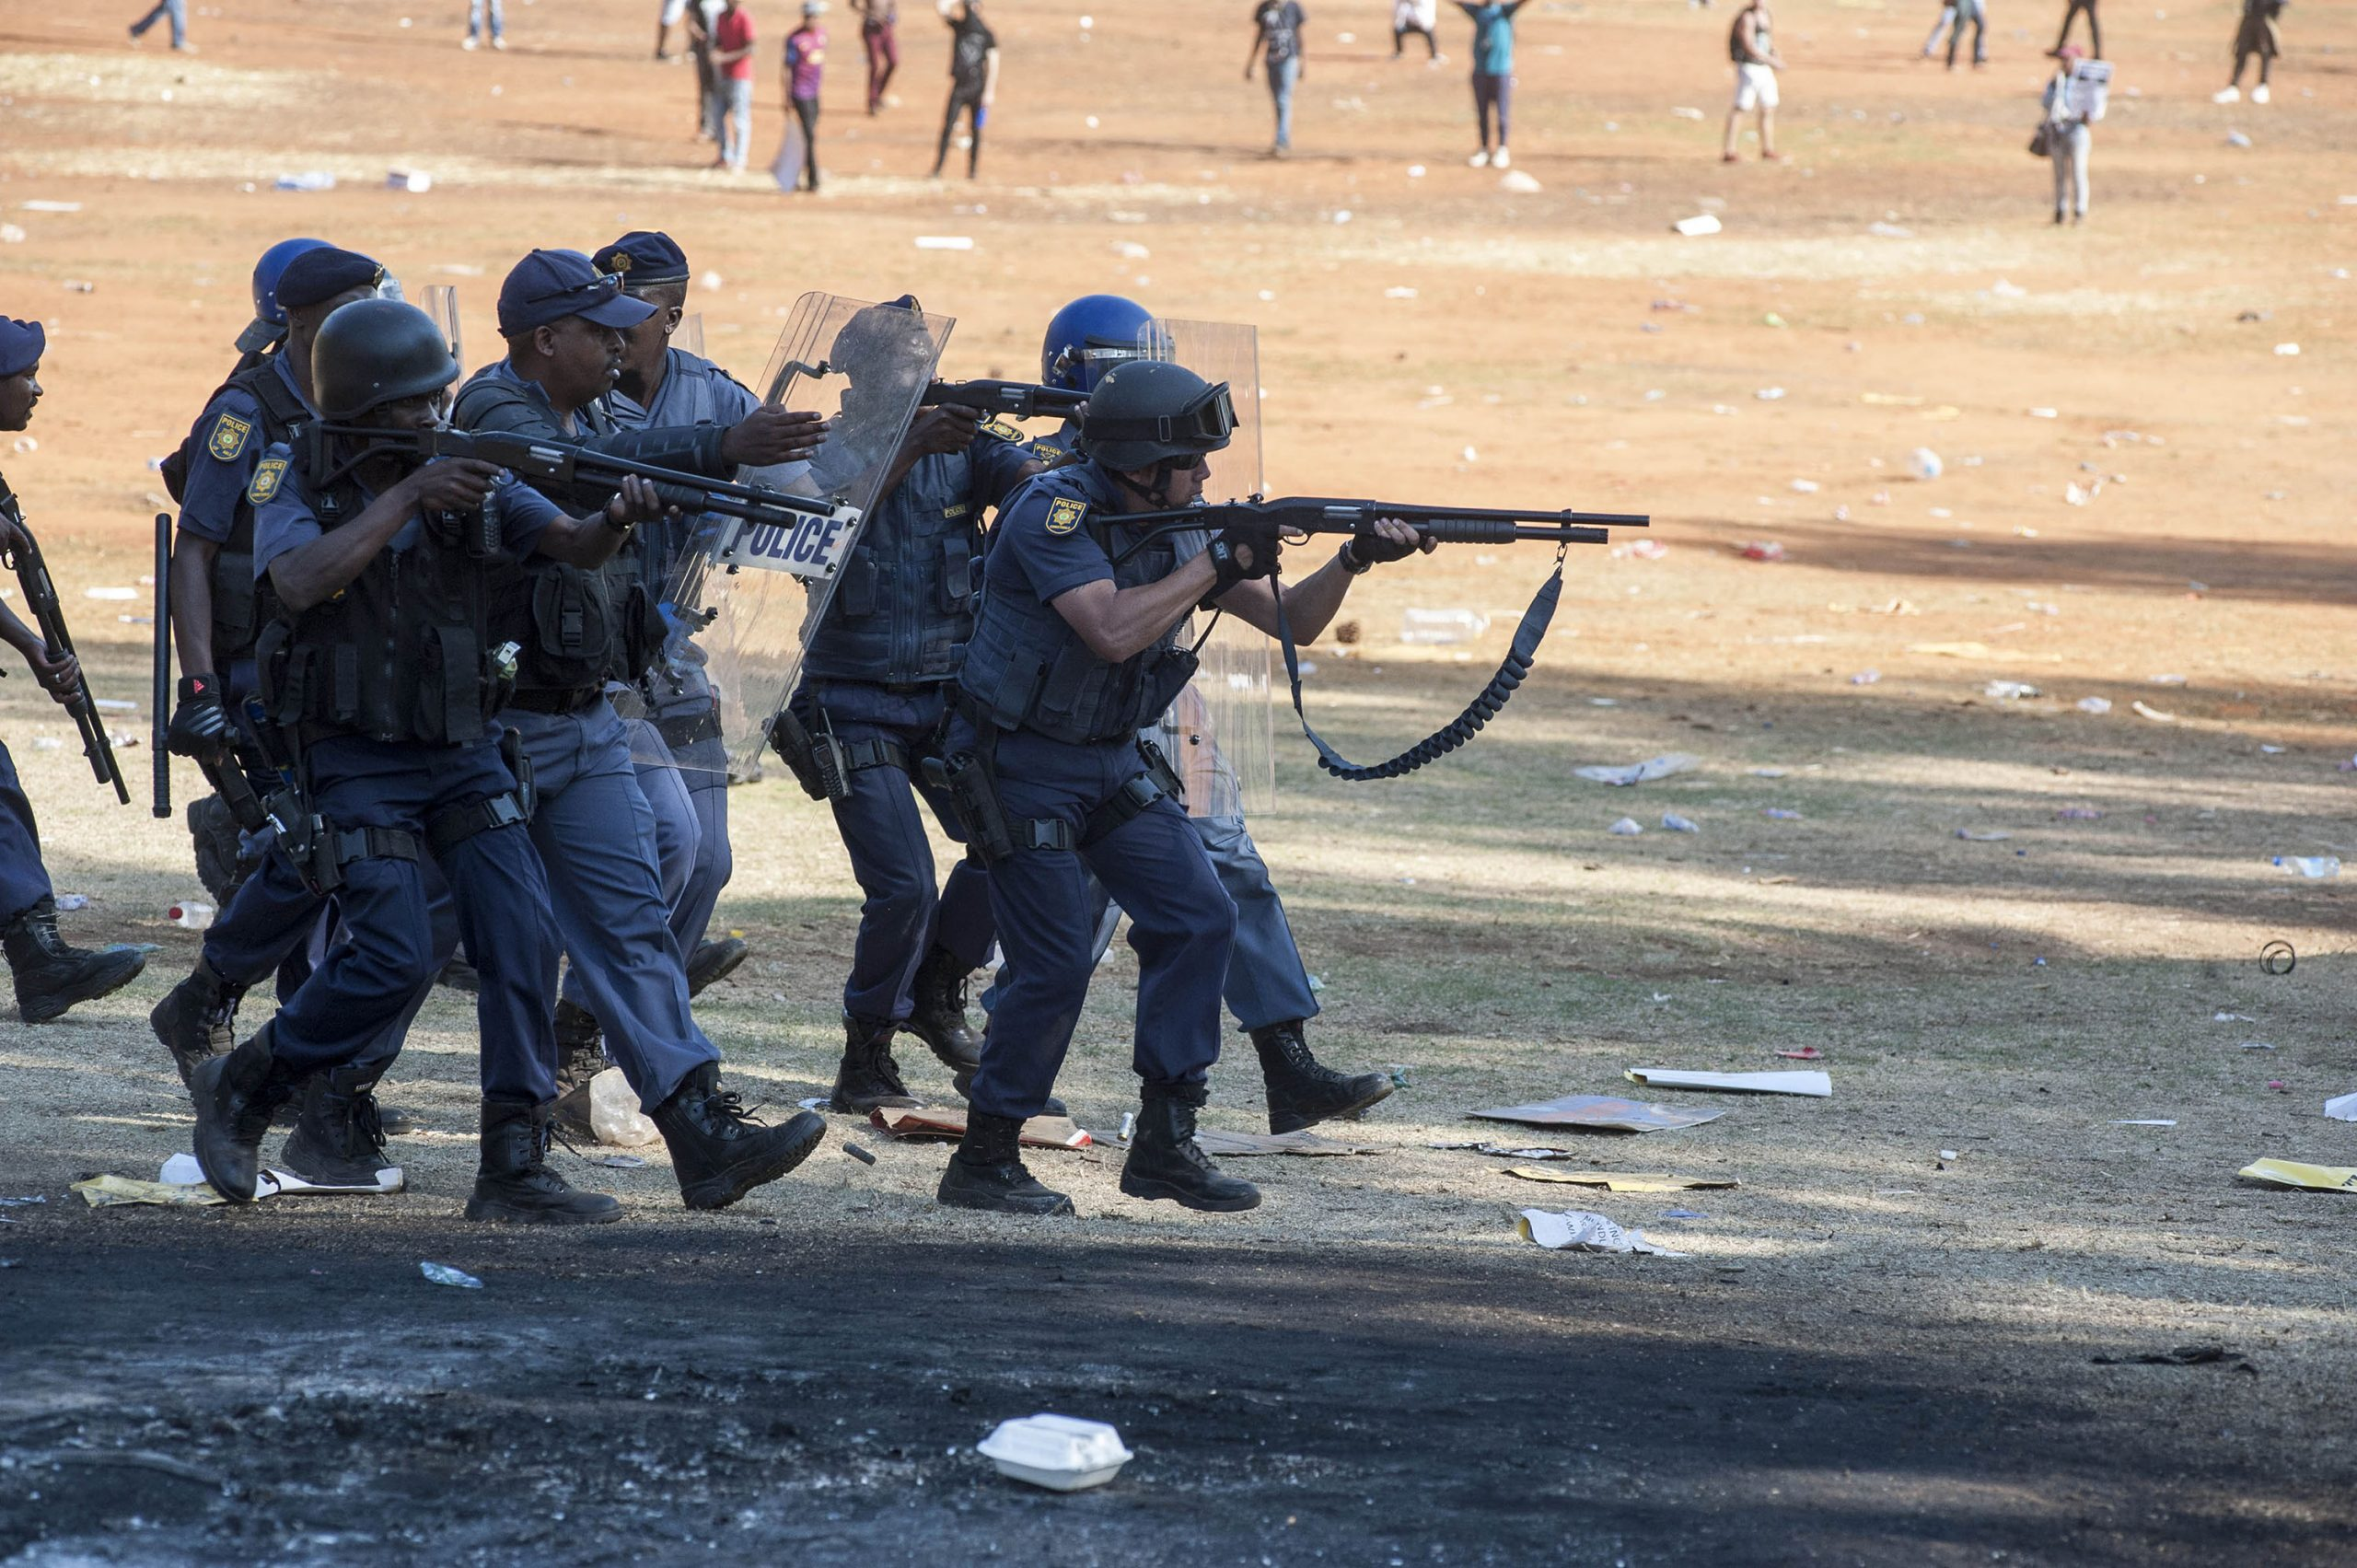 23 October 2015: South African police officers move in a military formation as they open fire on students who were protesting against fee increases at the Union Buildings in Pretoria. (Photograph by Ihsaan Haffejee)